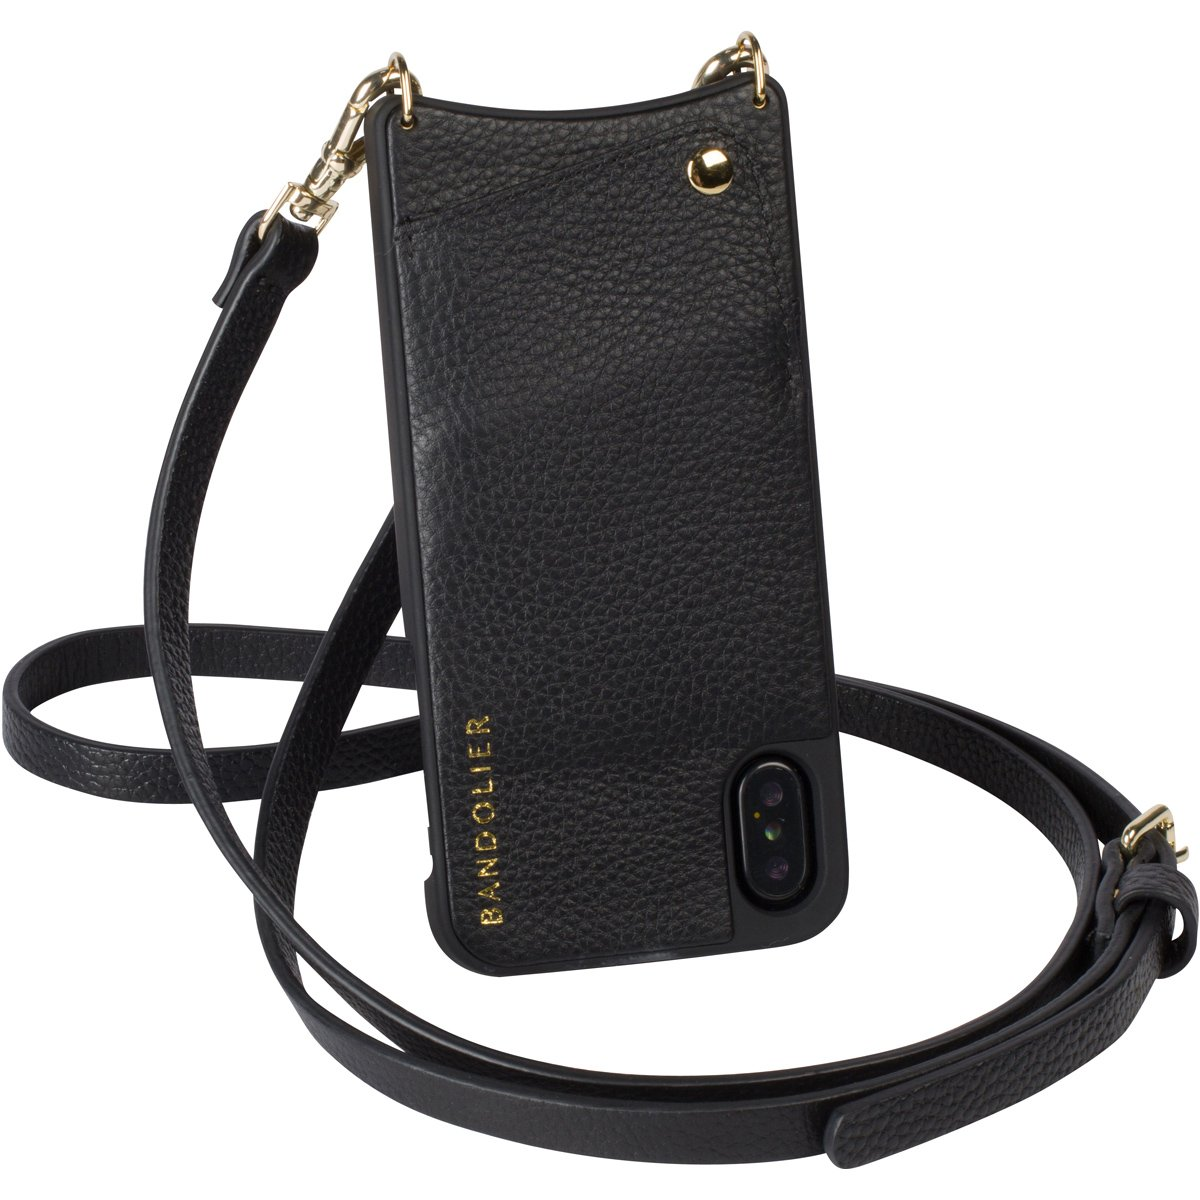 Bandolier [Emma] Crossbody Phone Case and Wallet - Compatible with iPhone X & XS - Black Leather with Gold Accent